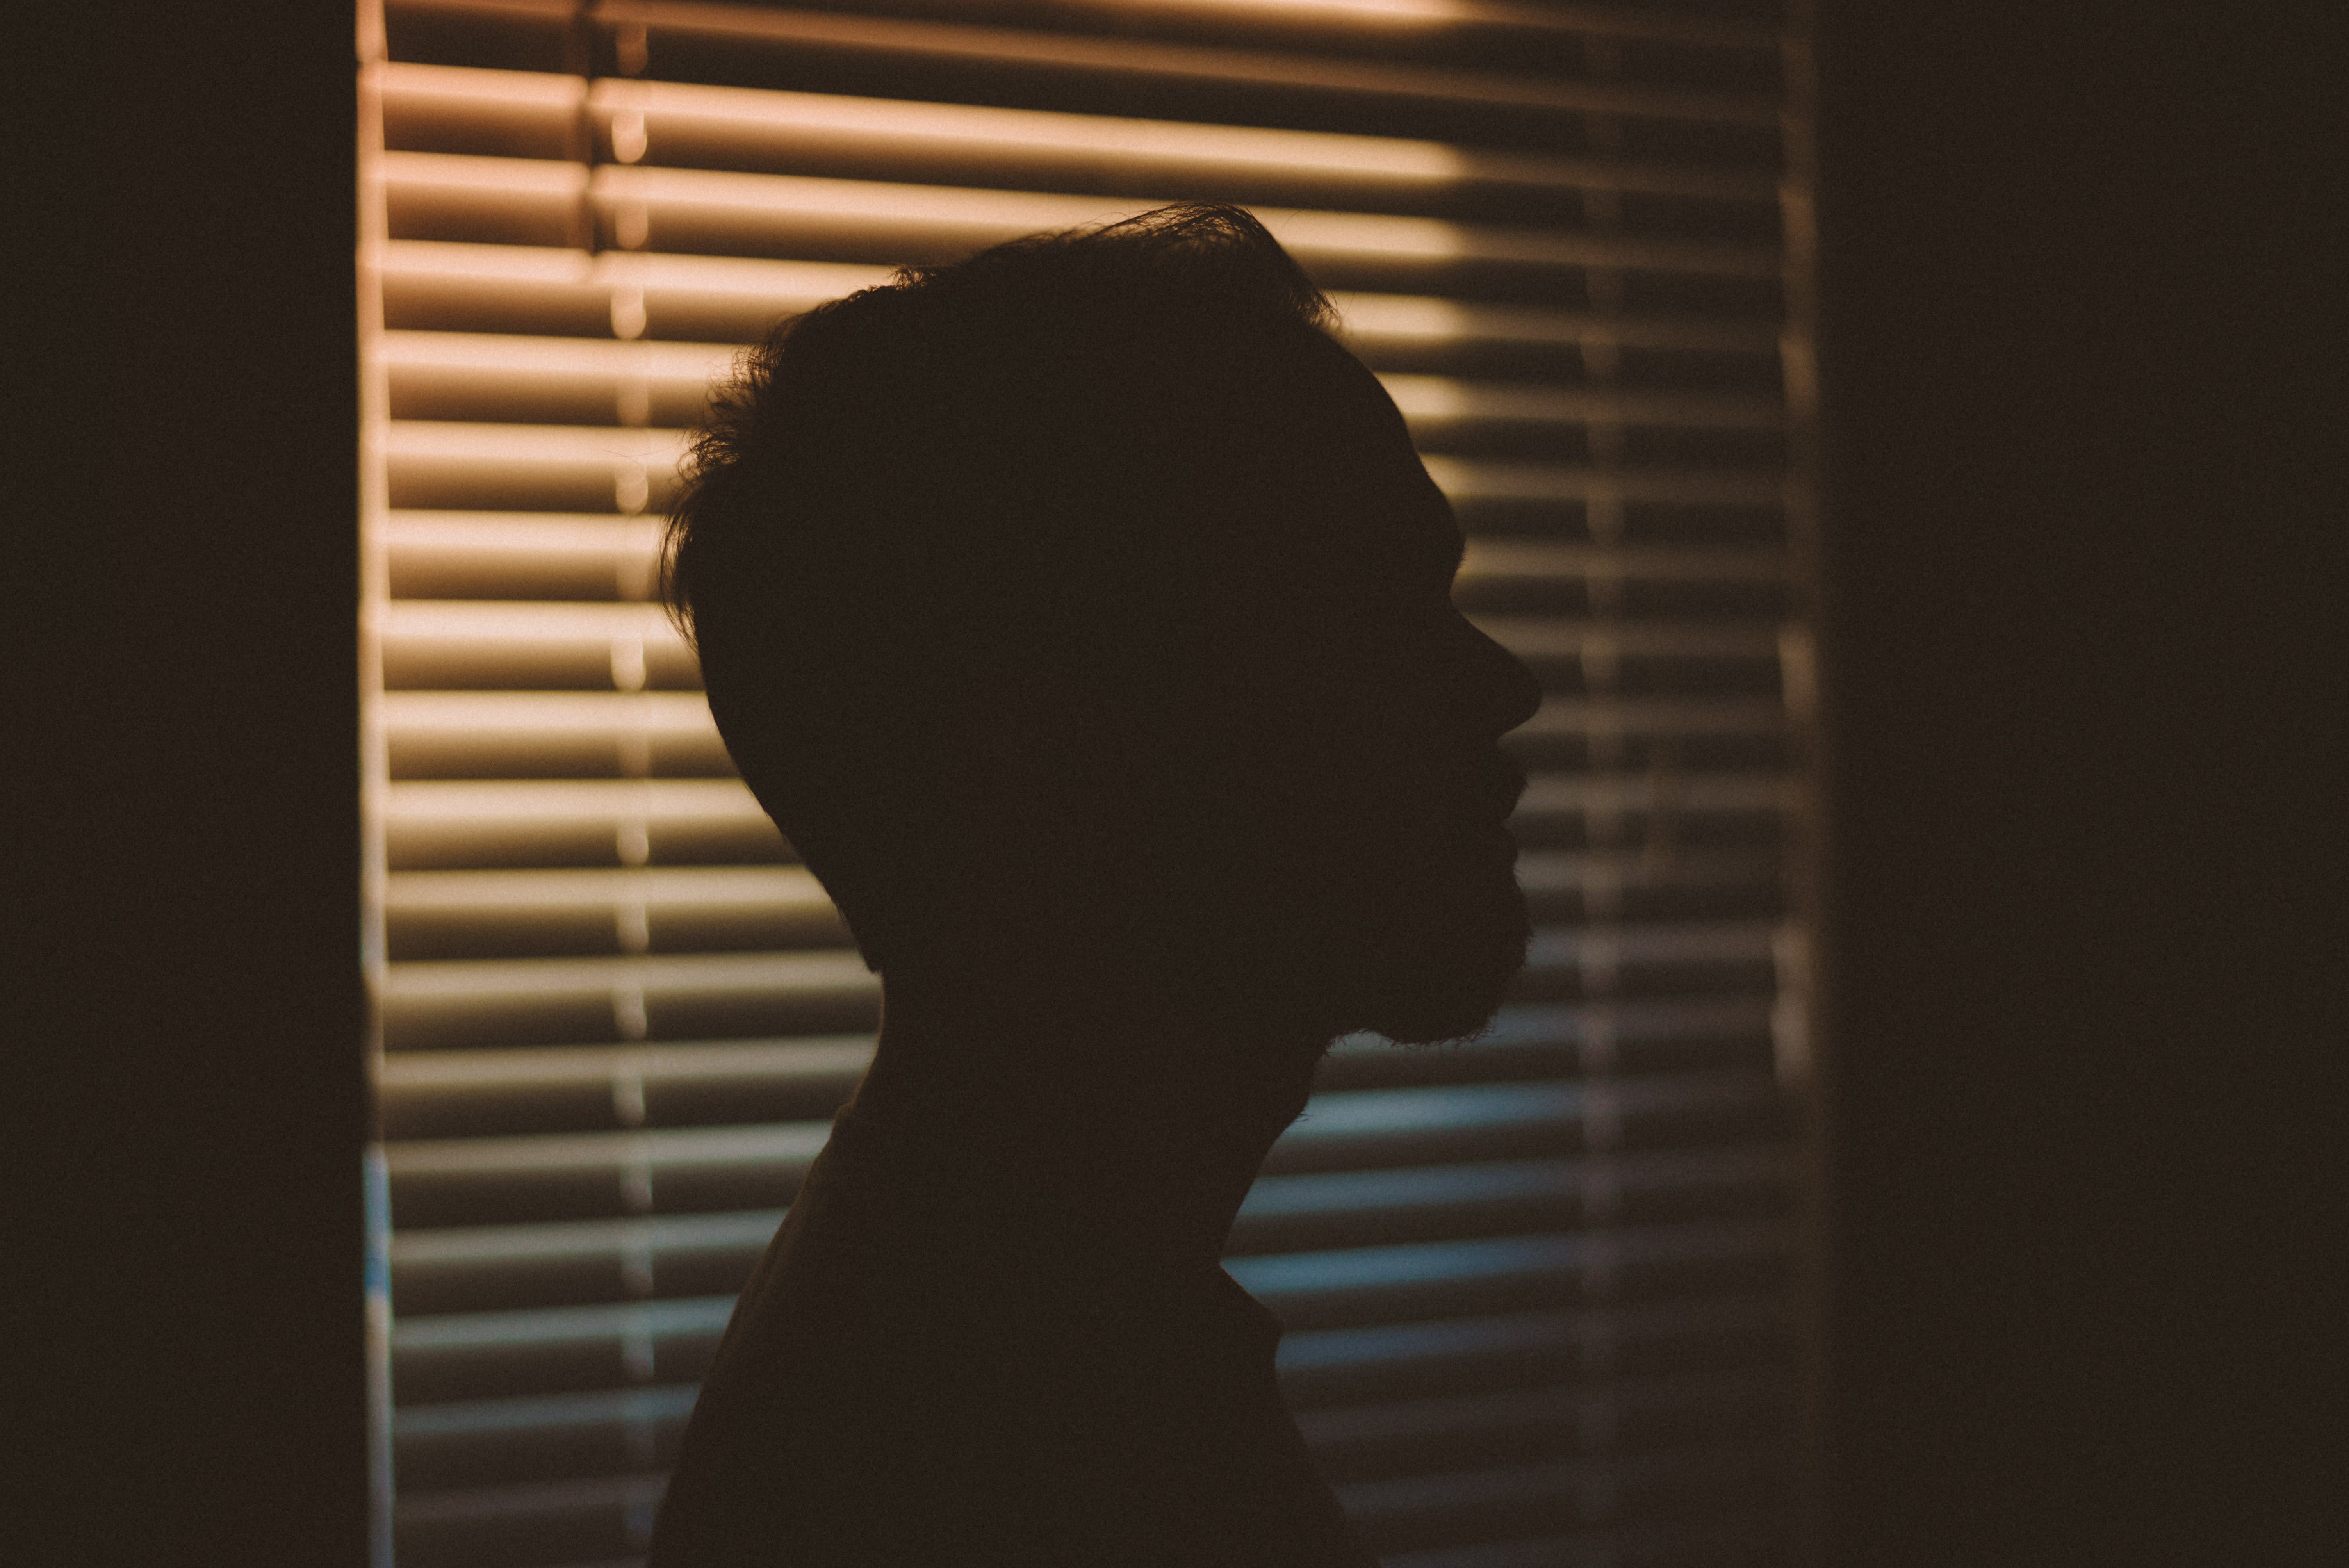 Man's Silhouette Near White Window Blinds